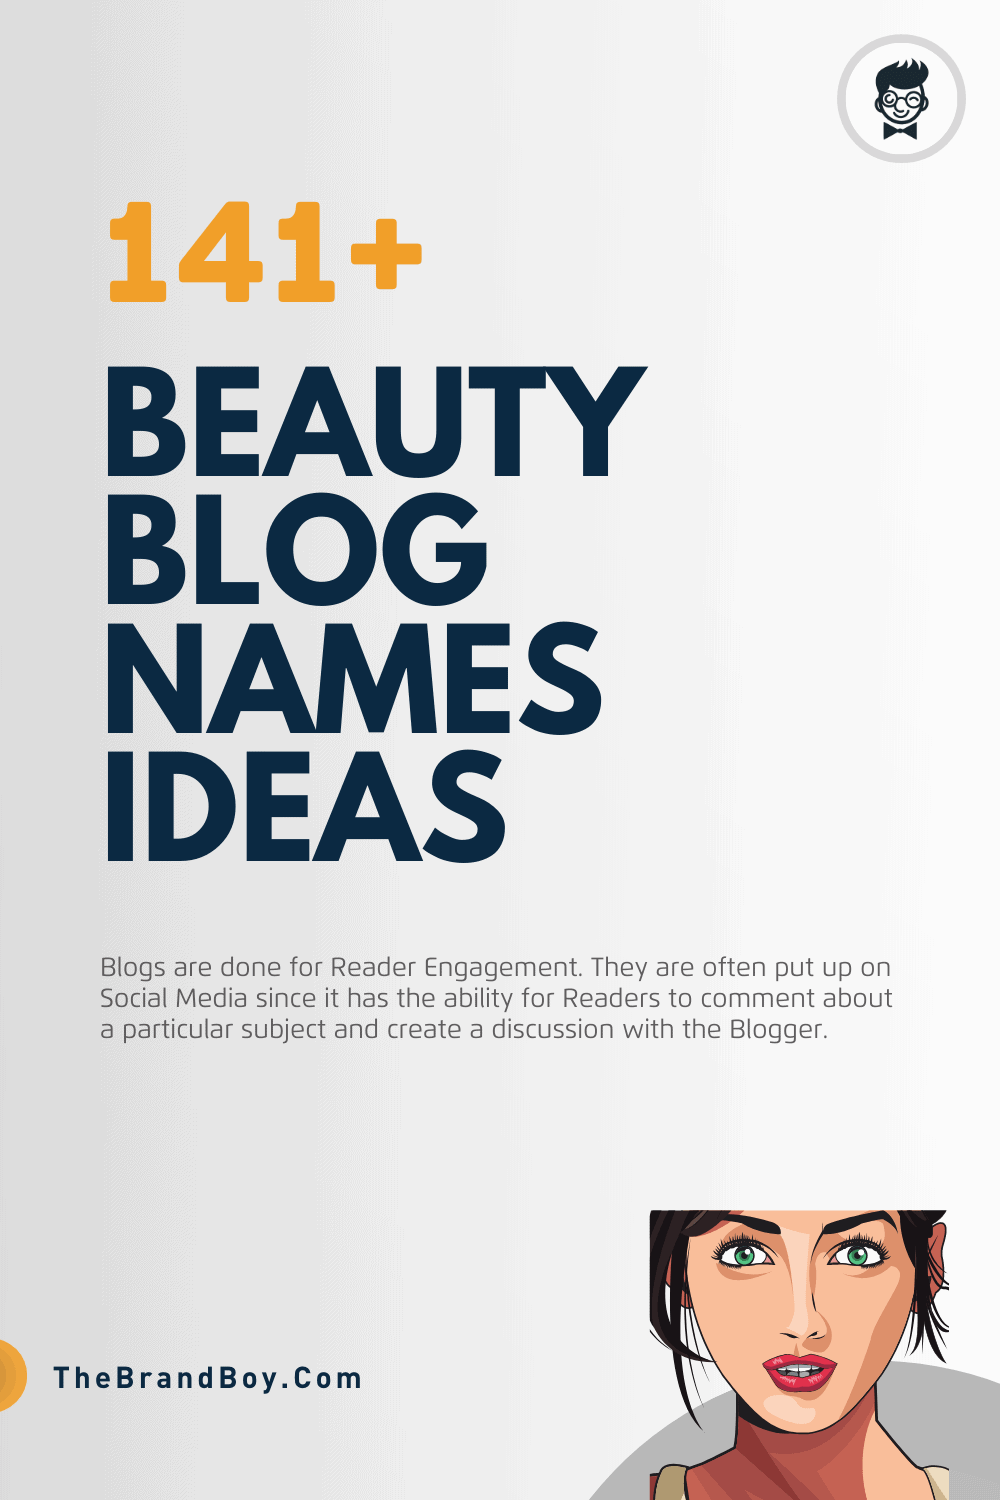 18+ Top Beauty Blogs & Page Names ideas  Video+Infographic